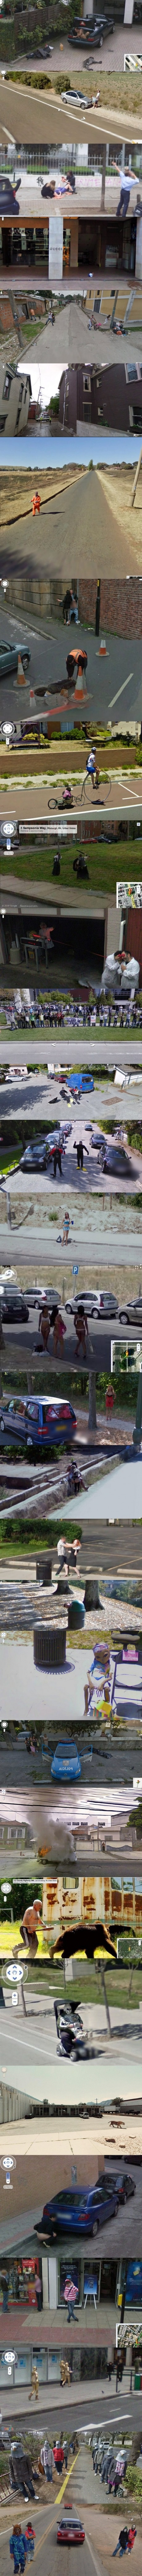 funny-picture-google-street-weird